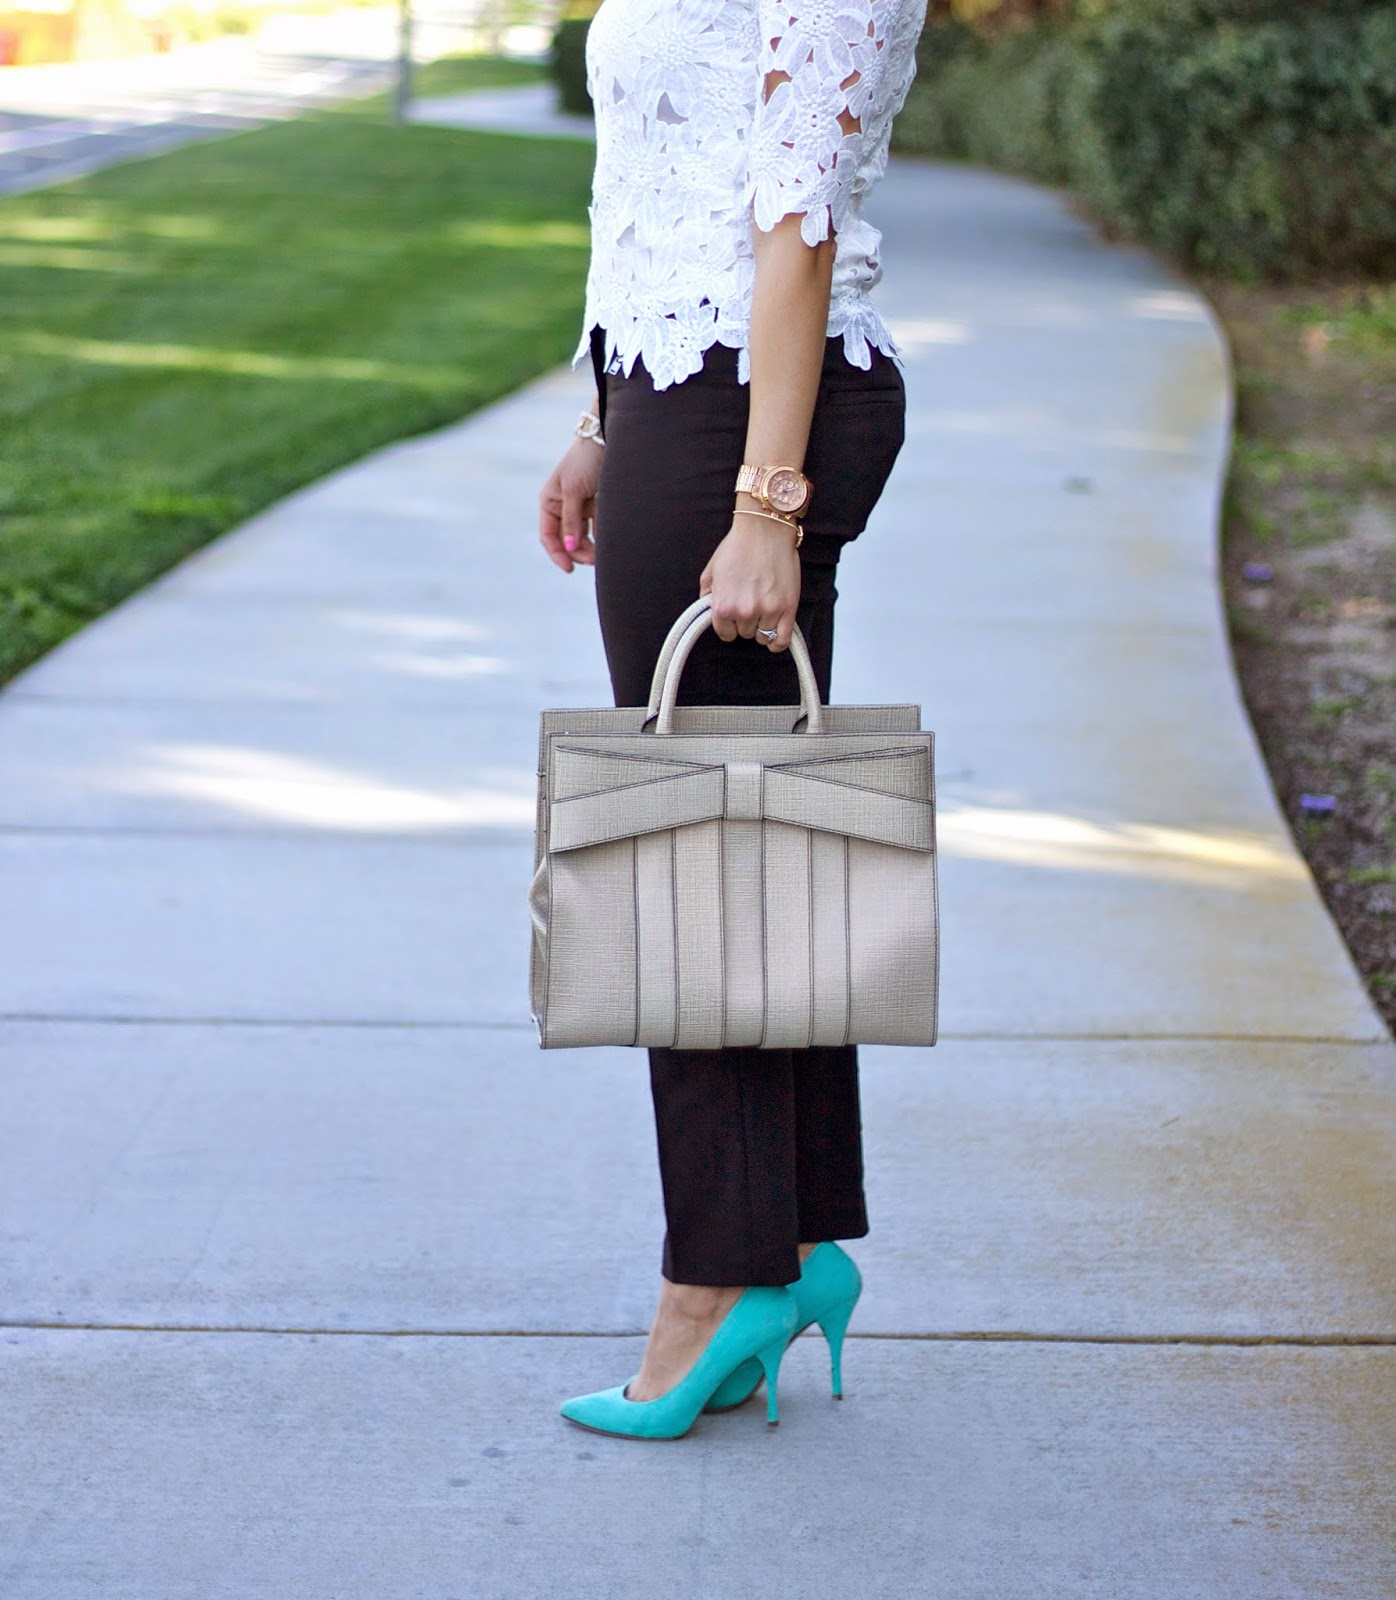 Zac posen handbag, #fabfound purse, mint heels, how to wear mint pumps, what to wear with mint pumps